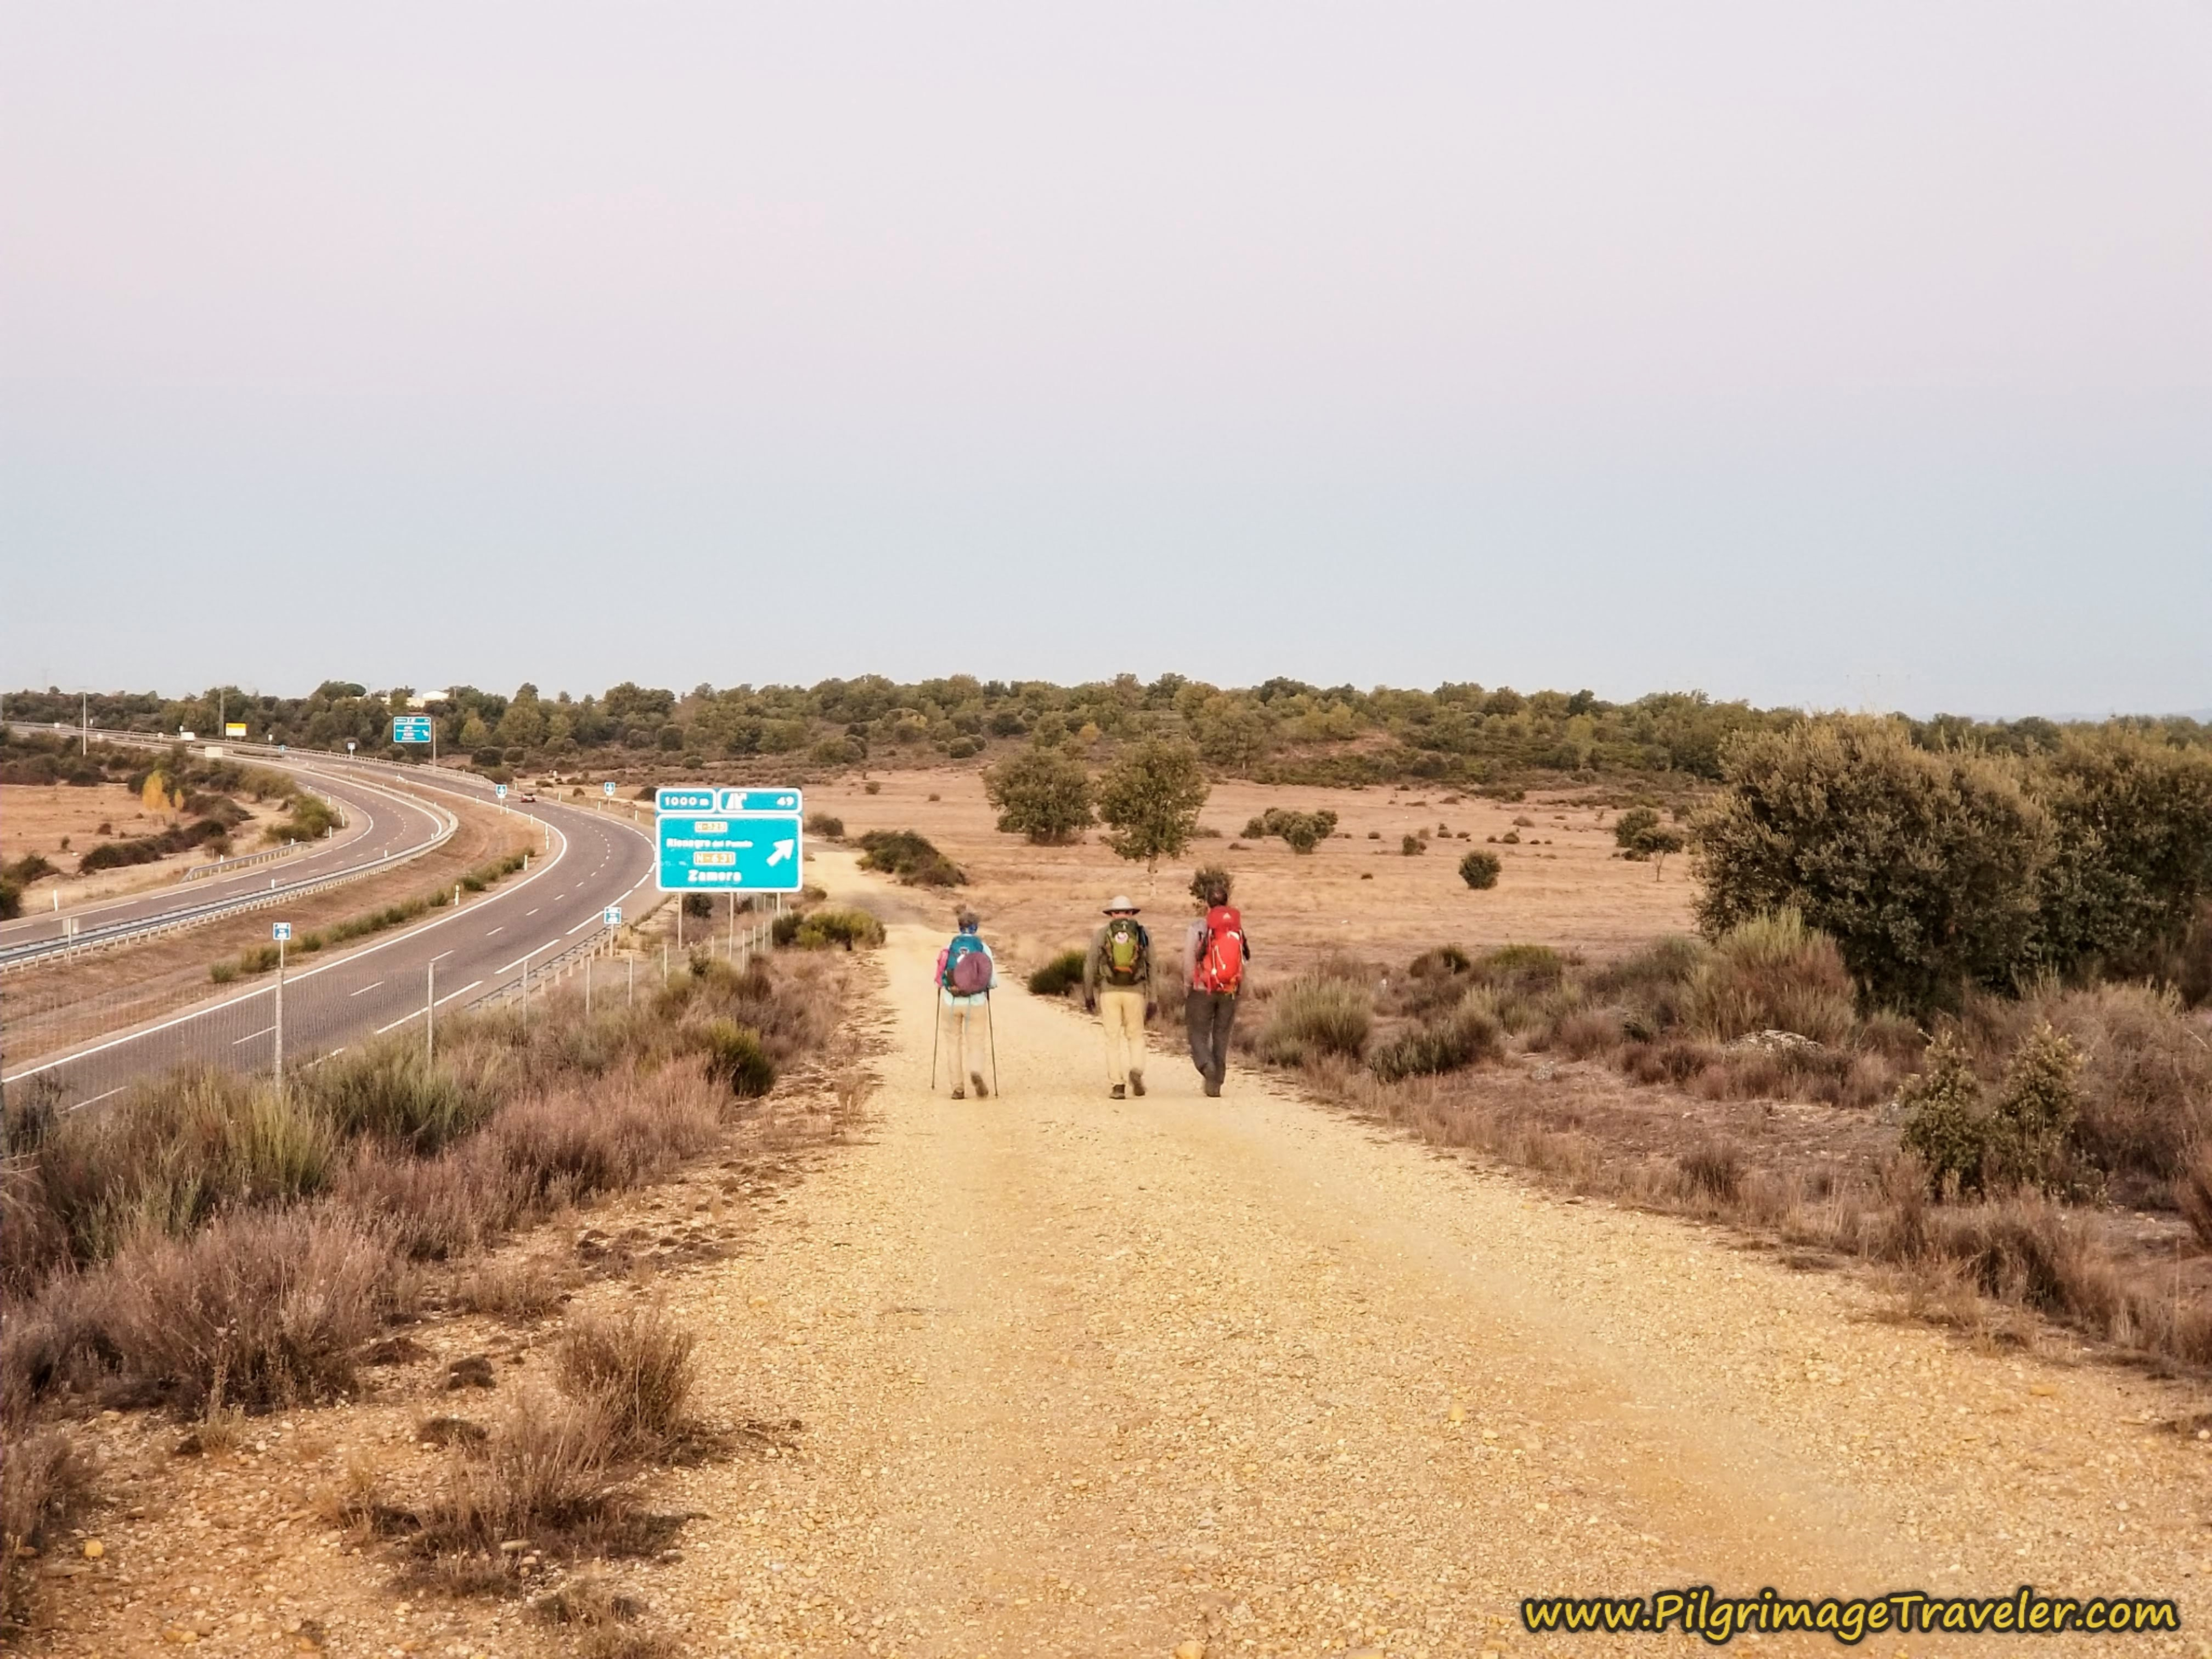 Walking Parallel to the A-52 on the Camino Sanabrés from Rionegro del Puente to Entrepeñas